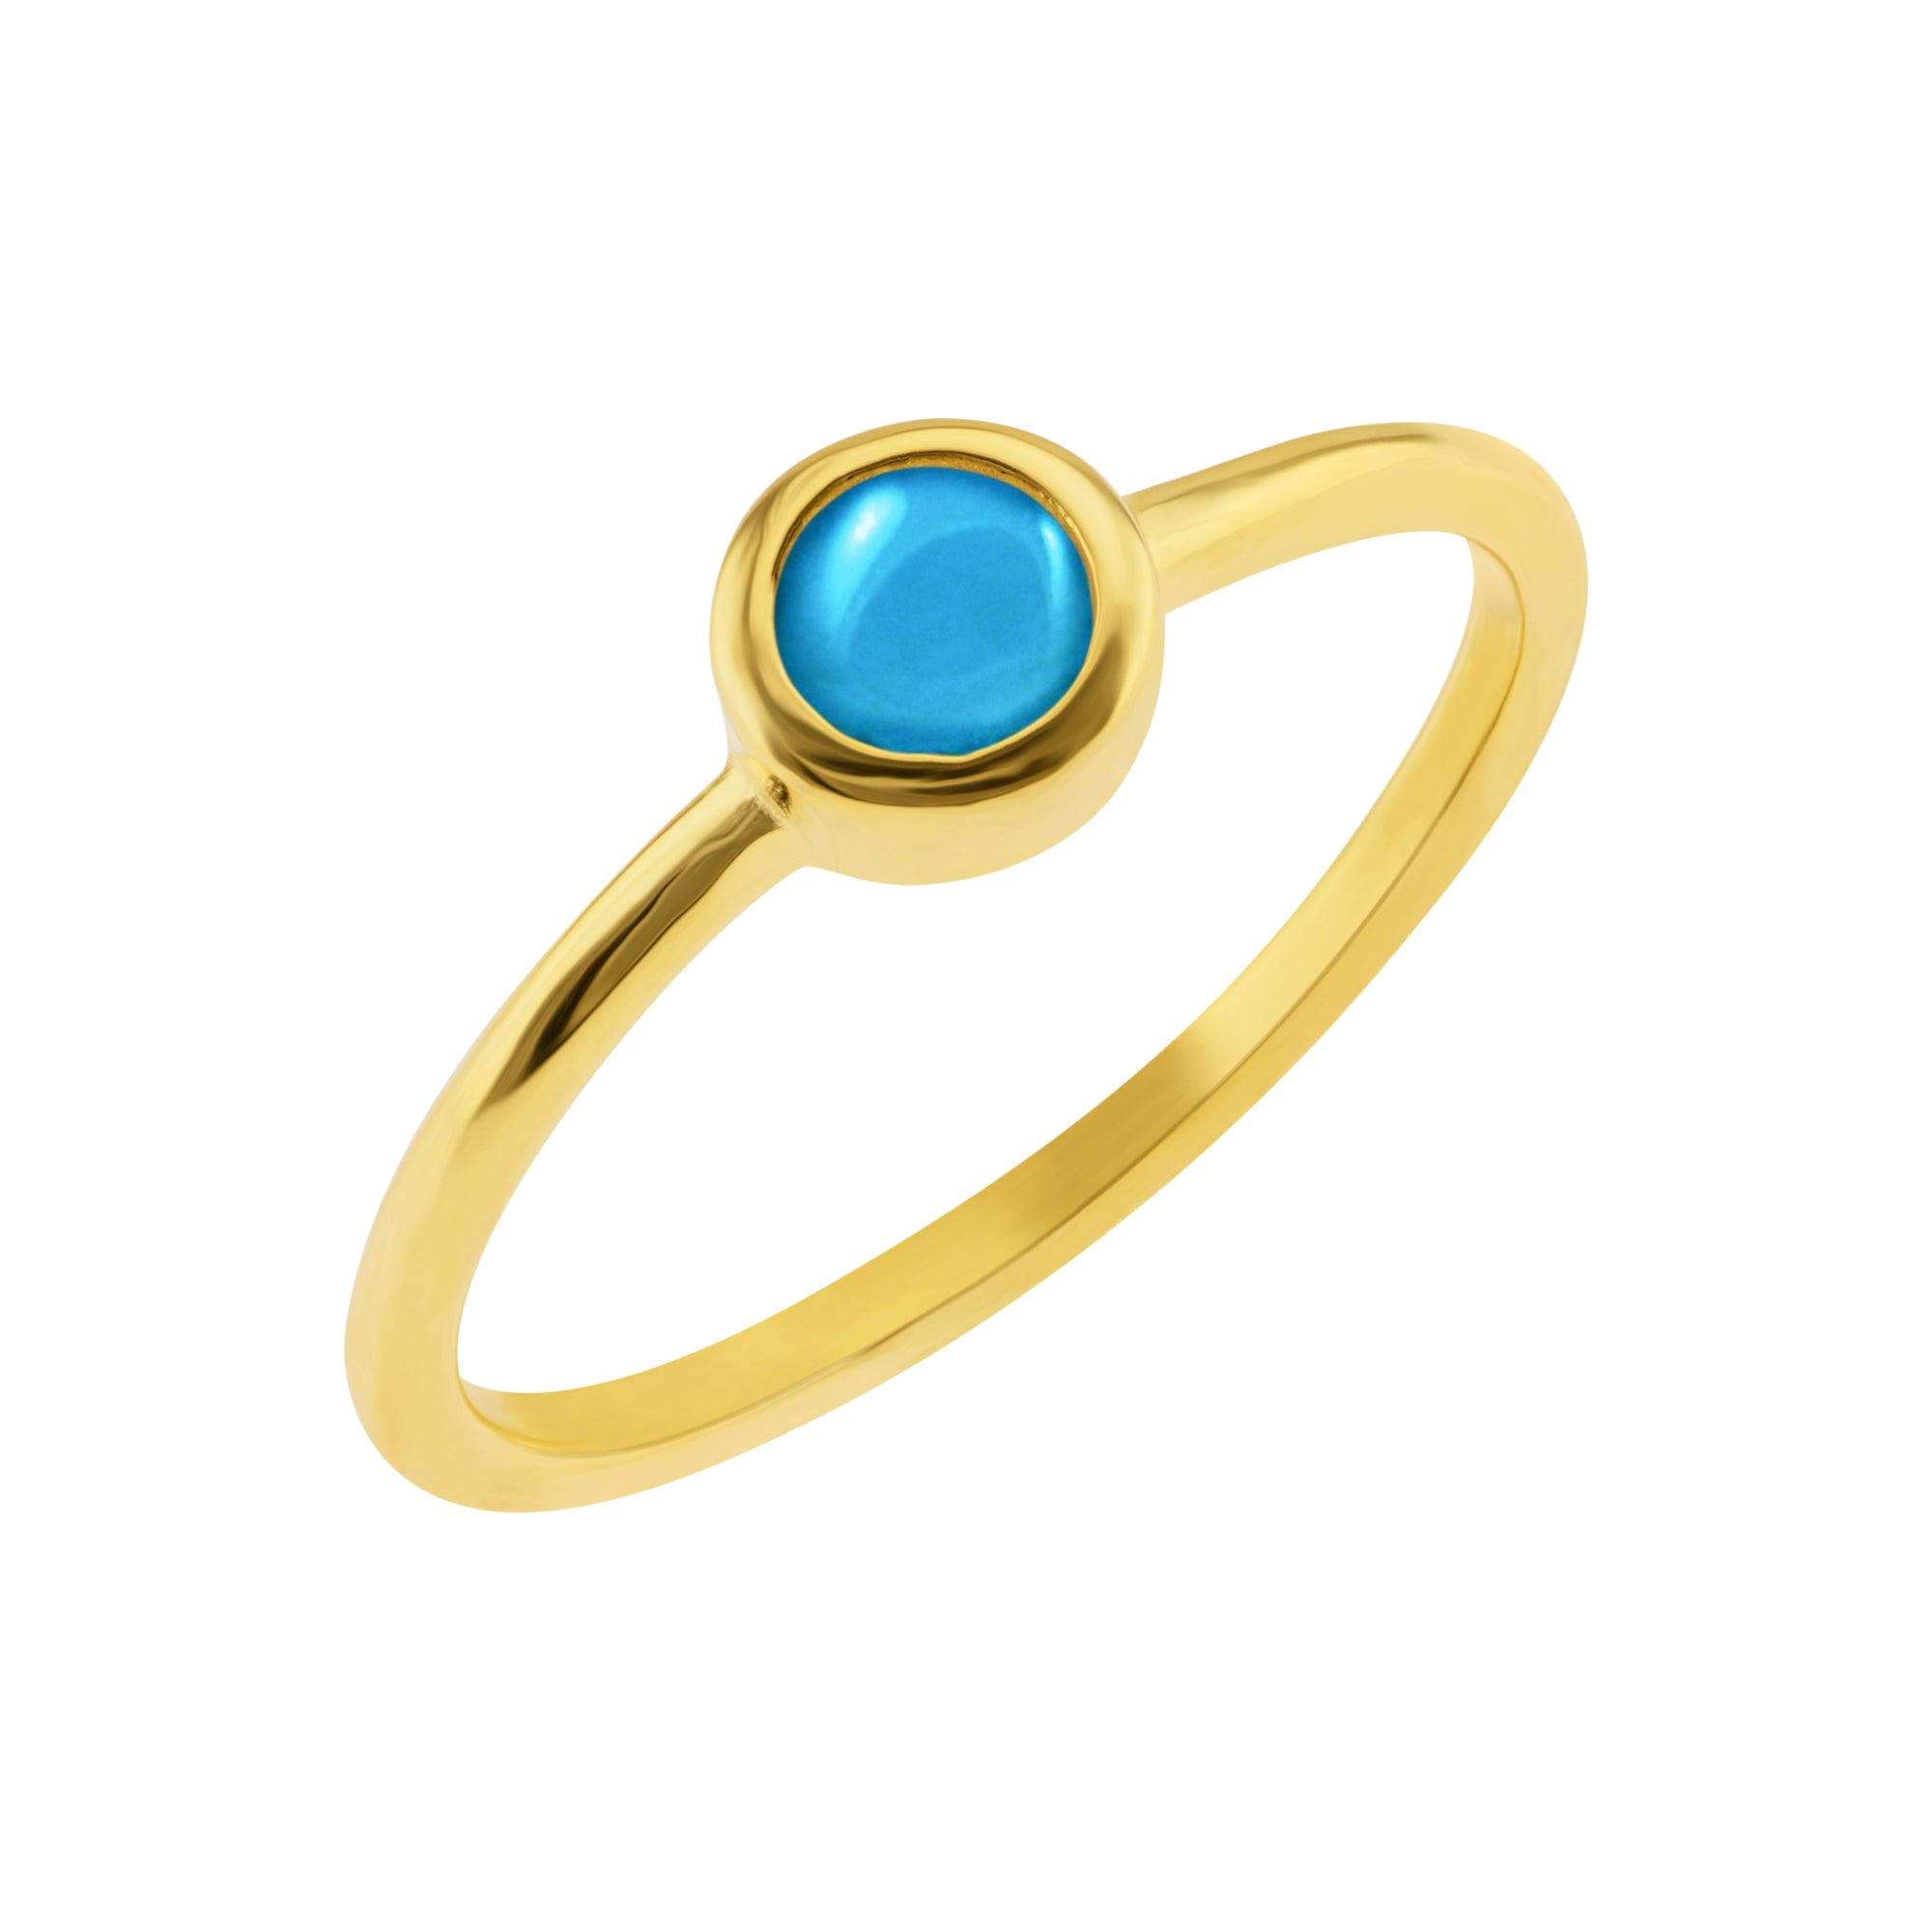 Minimal Turquoise Solitaire Ring - Yellow Gold - Voare Jewelry